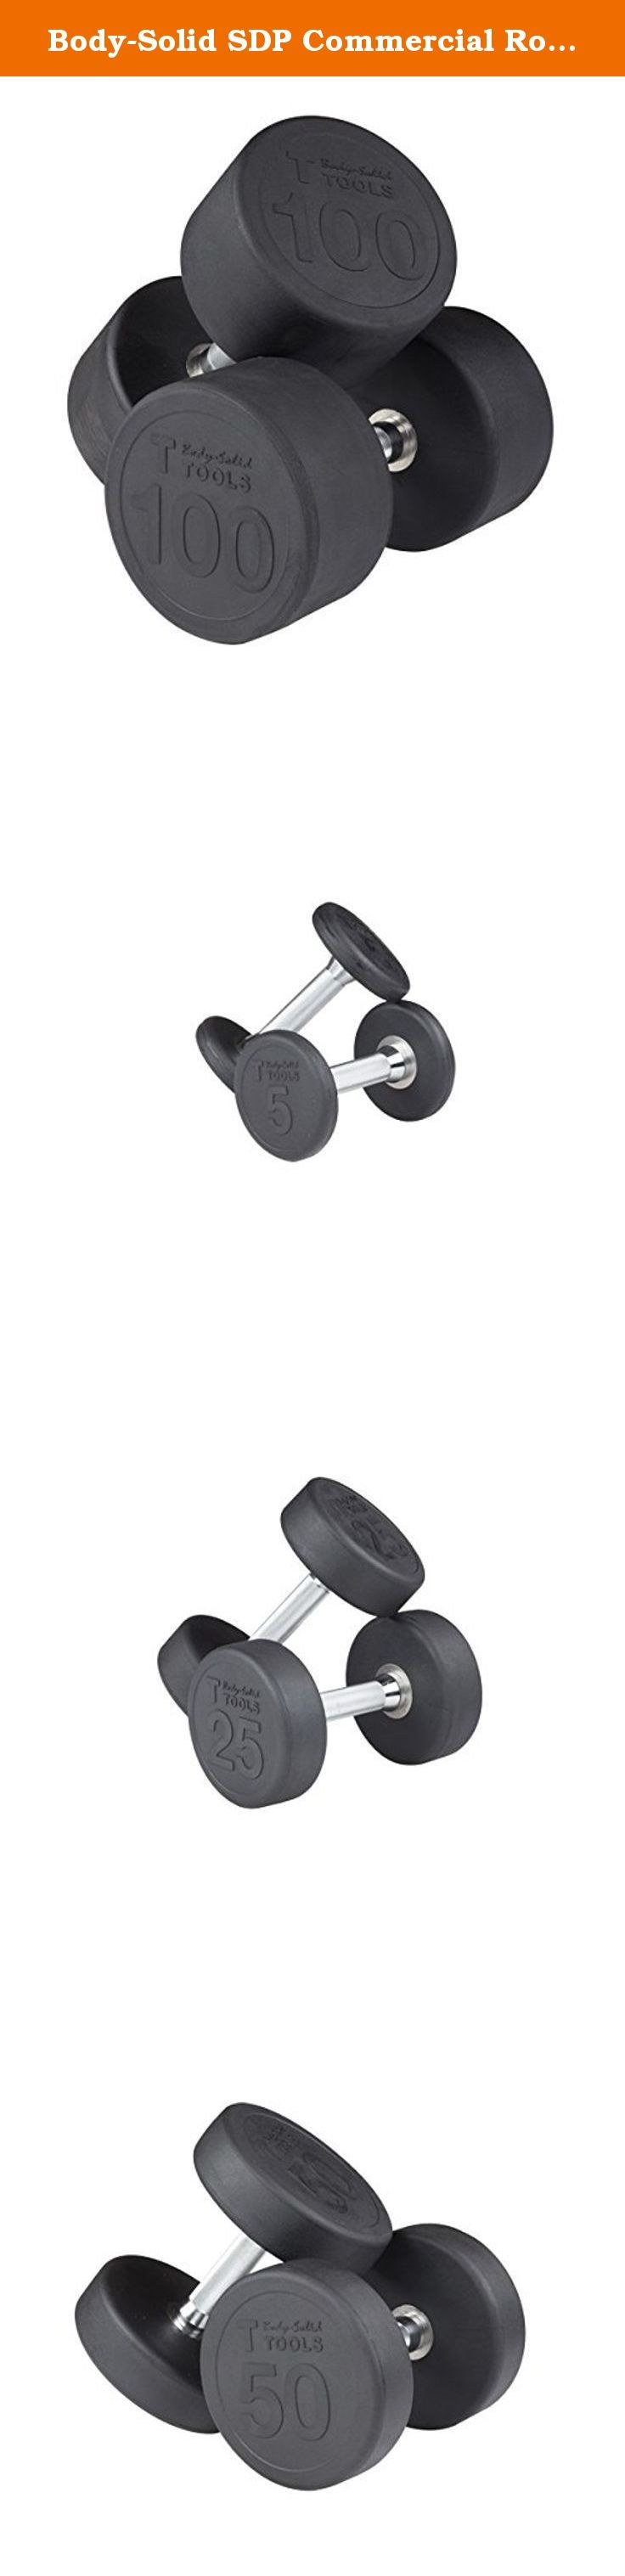 Body-Solid SDP Commercial Round Head Rubber Dumbbell Set - 5-100 lbs (20 pairs) - For Clubs and Home Gyms. SDP Series 5-100 lb. Commercial Round Head Rubber Dumbbell Set from Body-Solid (SDPS2100) - Body-Solid's rubber round dumbbells (SDP) are an ideal fit for any residential, vertical market, or commercial application, including home gyms, garage gyms, personal training studios, hotel and resort fitness centers, commercial gyms, and sports performance training centers. The machined…